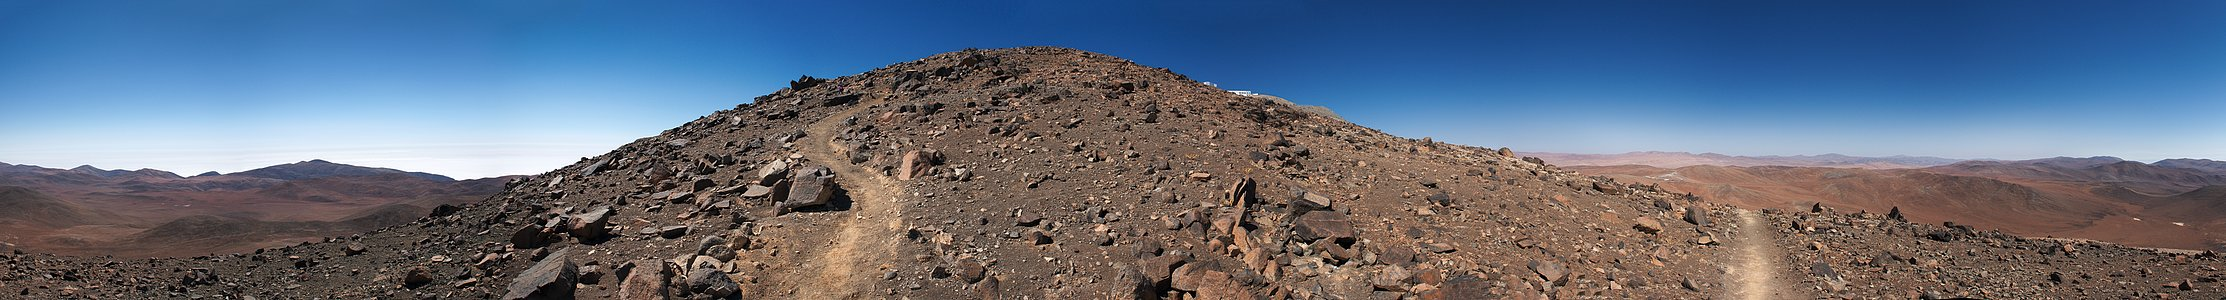 Boldly going up Cerro Paranal